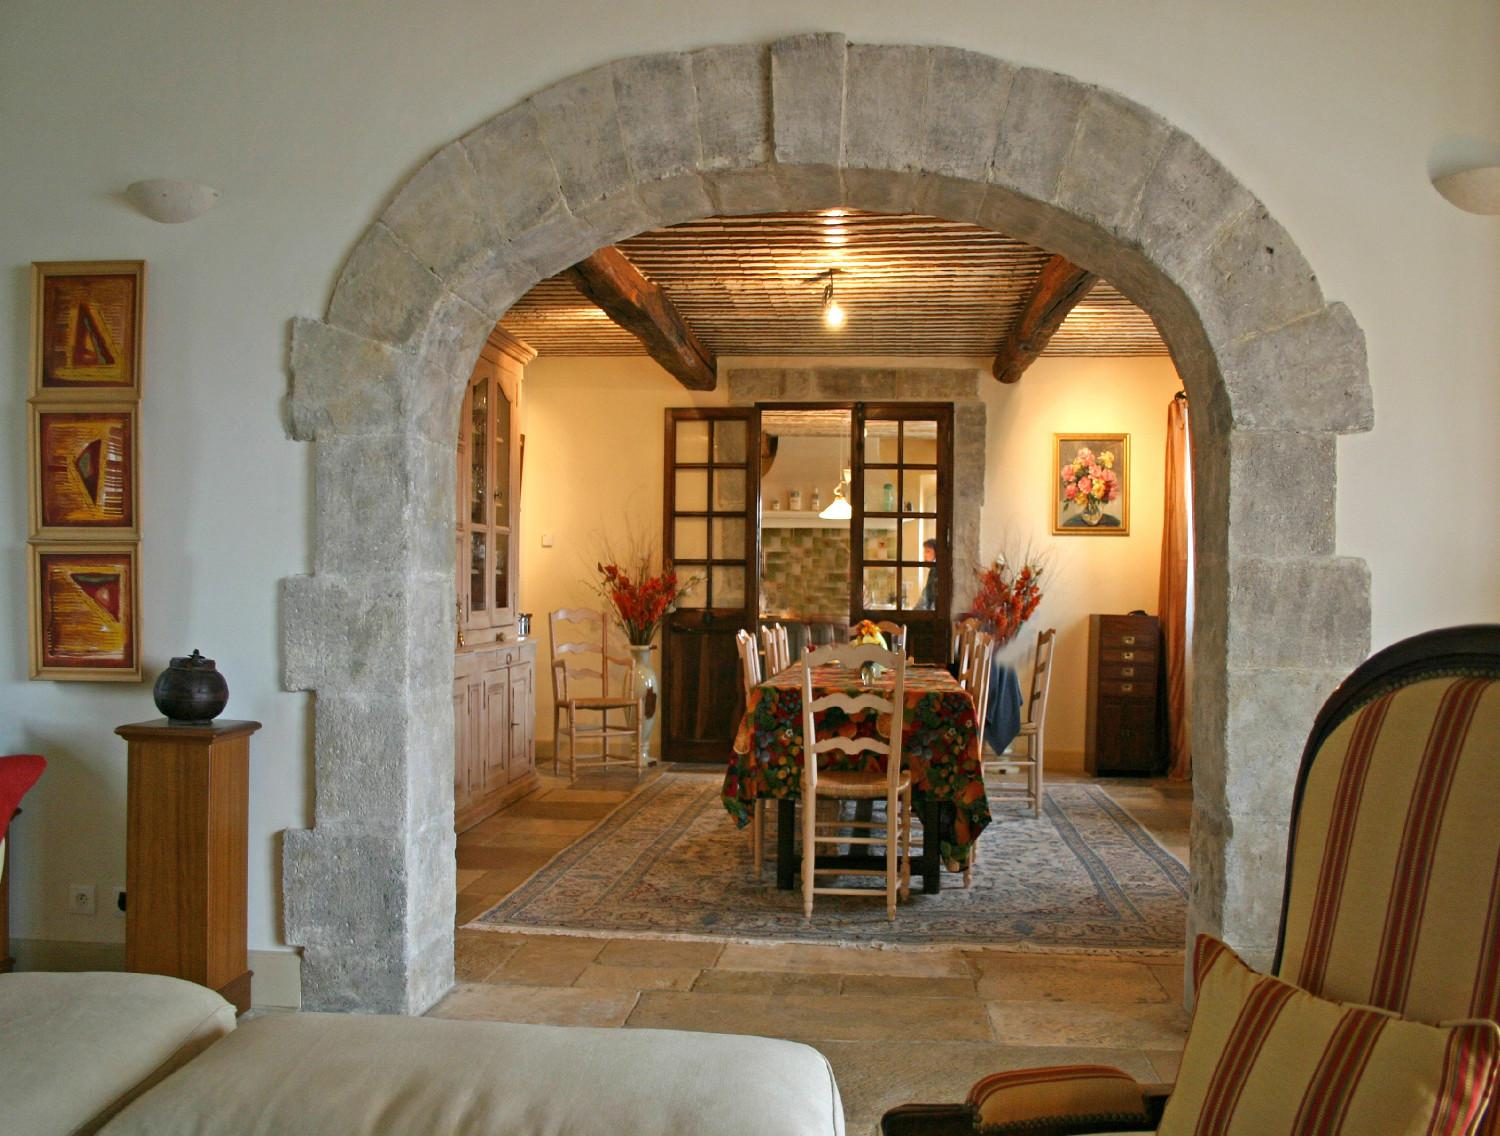 Newly built houses a provencal mas made of stone a for Salle a manger stone